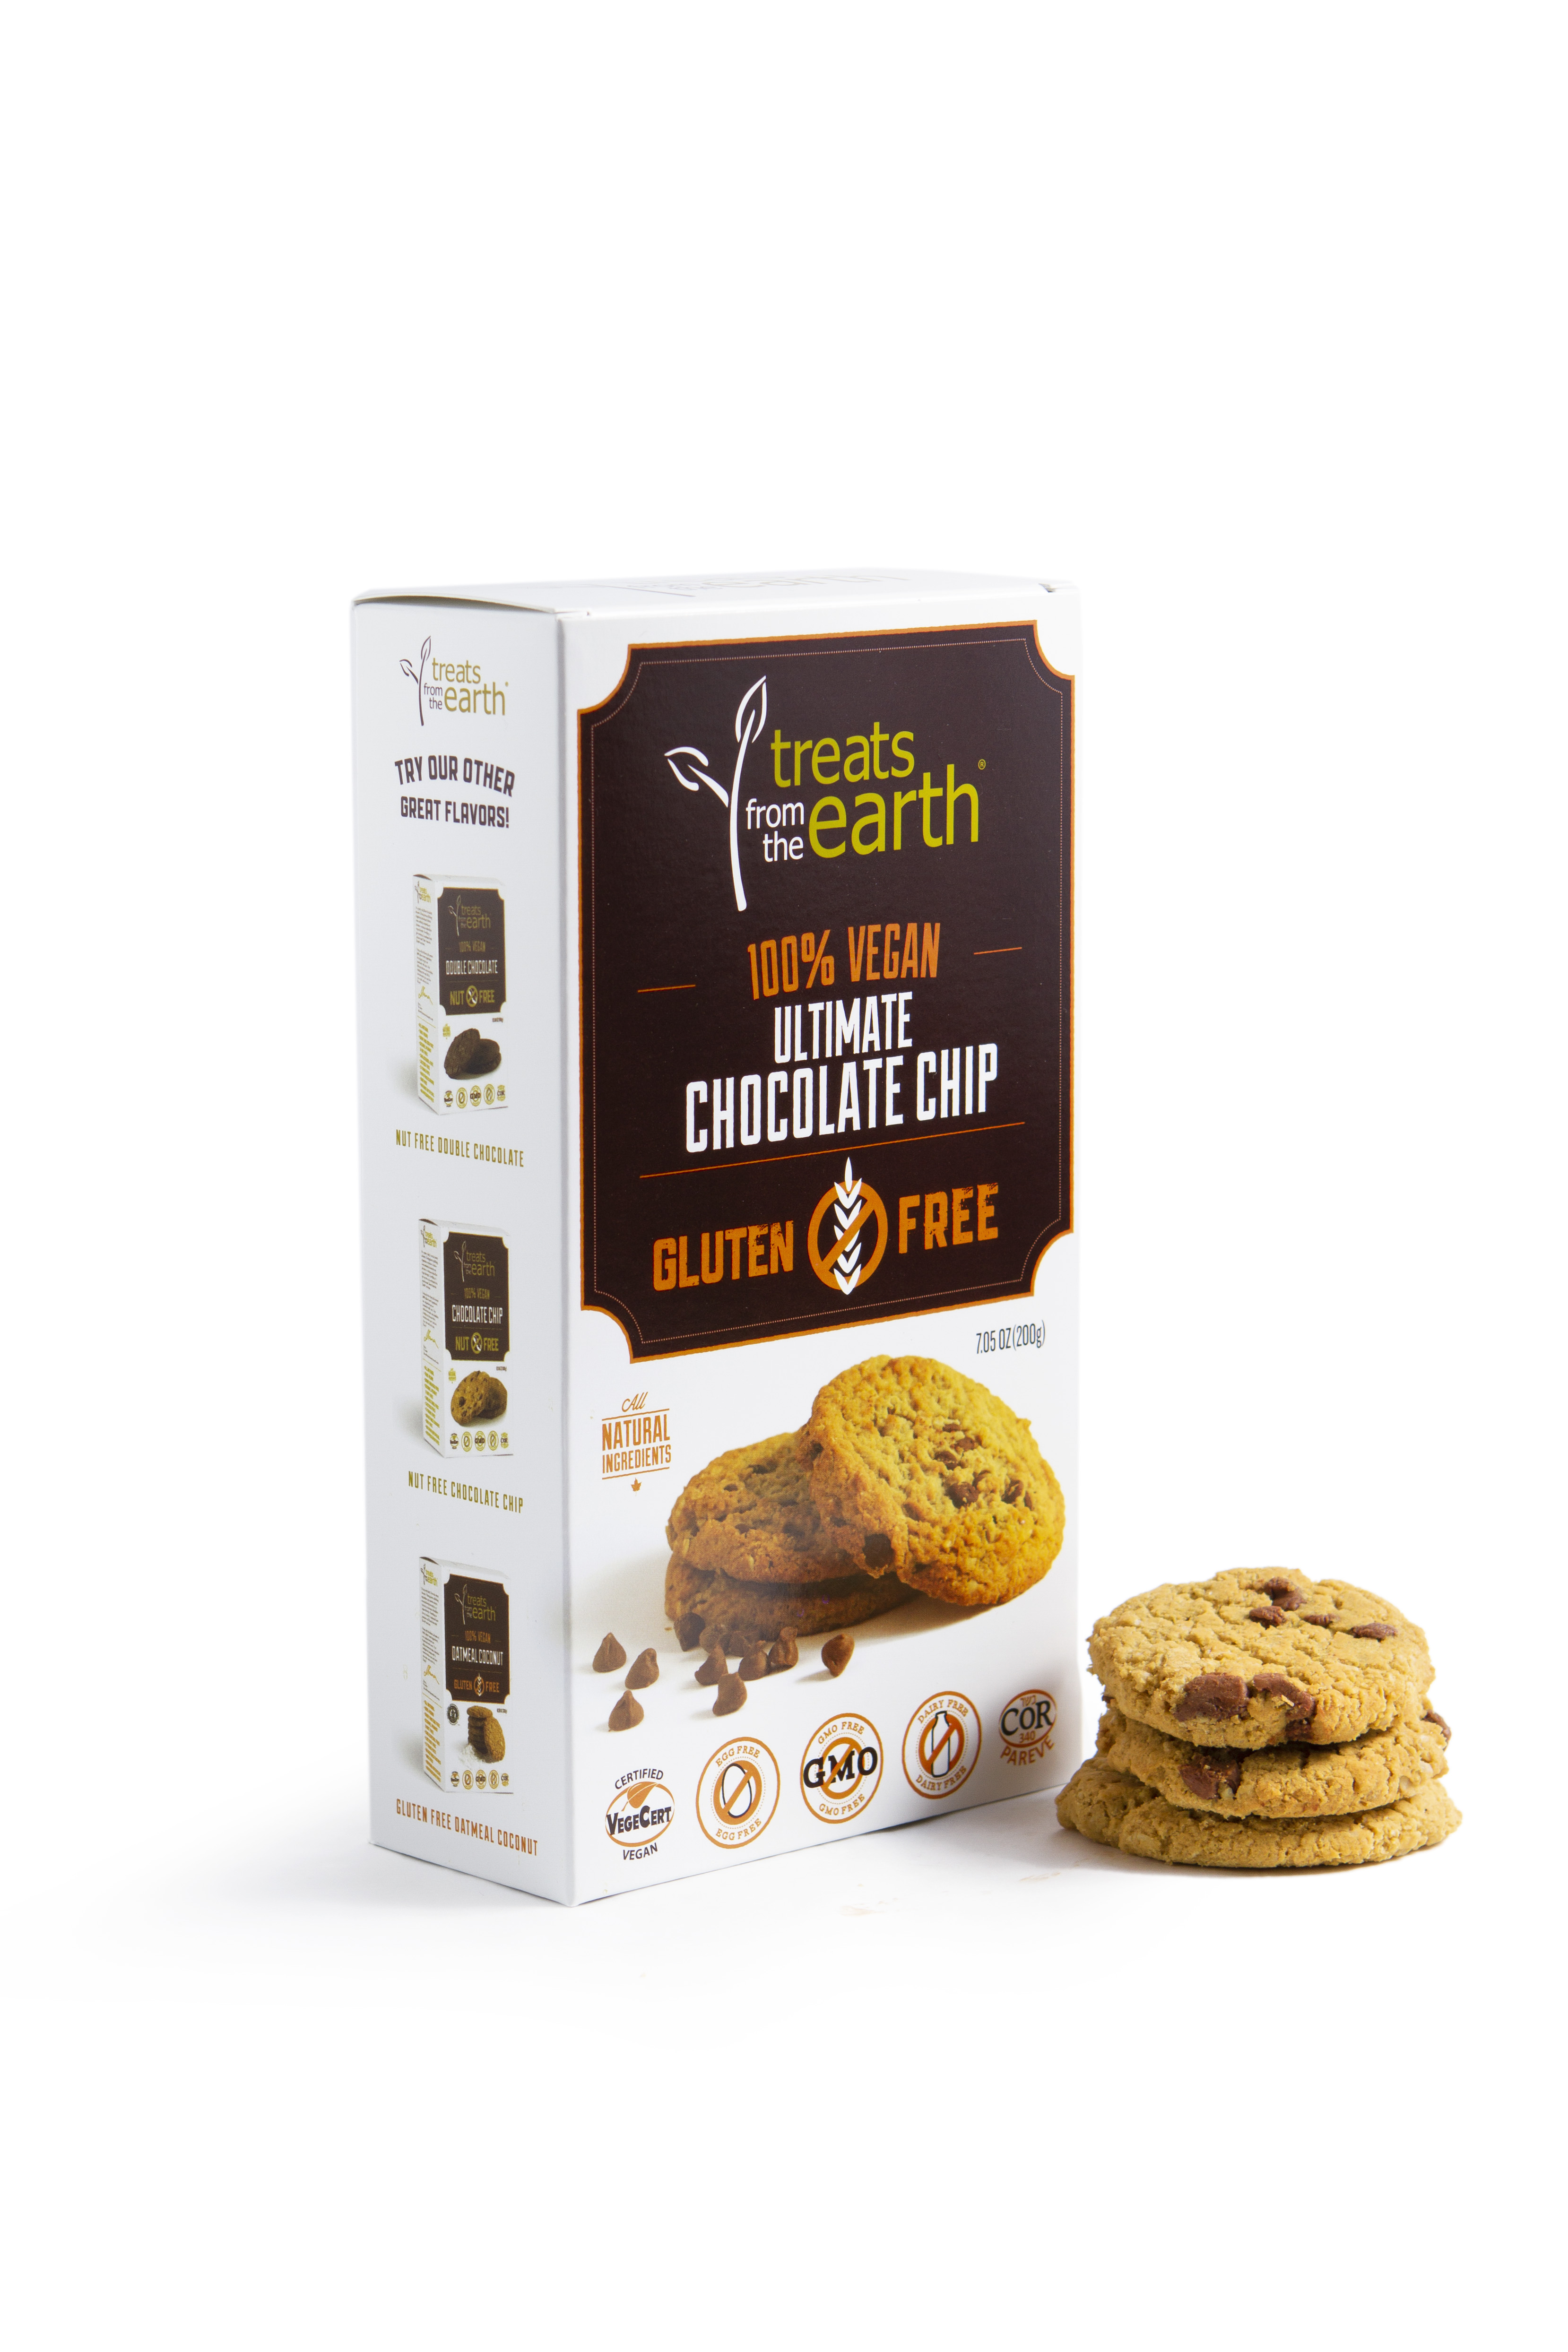 TFTE GF Ultimate Chocolate Chip Cookie Box